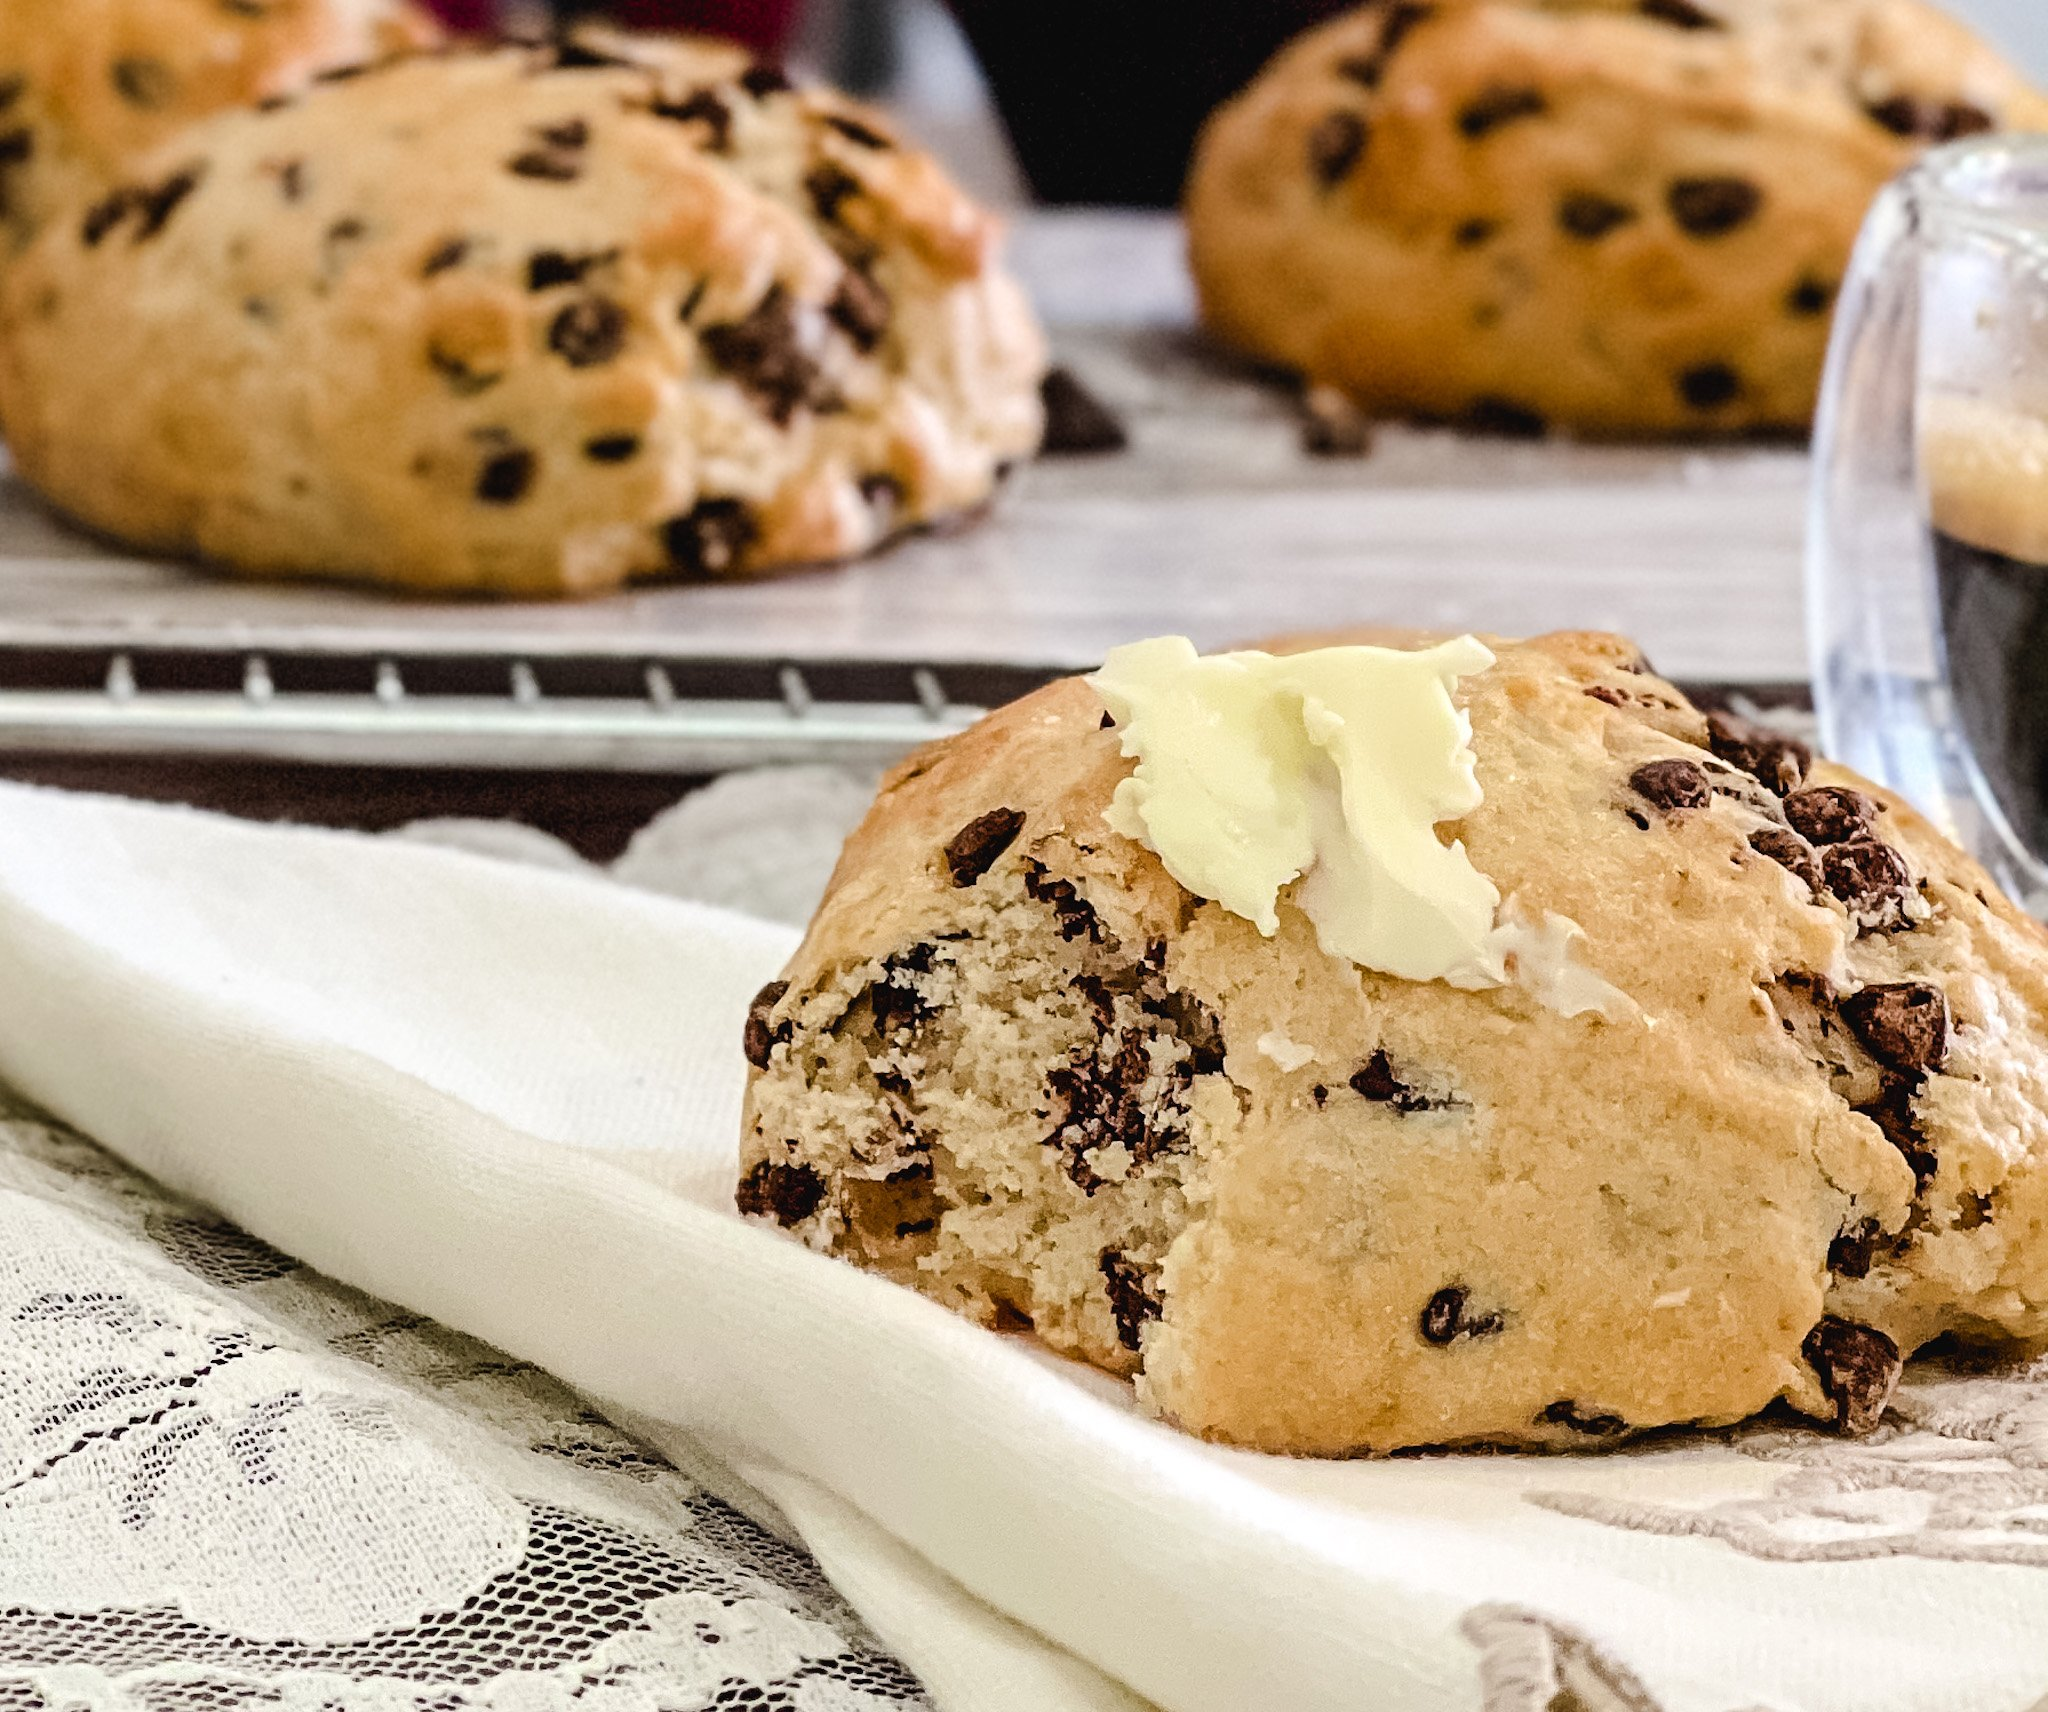 Hot Cakes Bakery - Chocolate Chip Scones 1